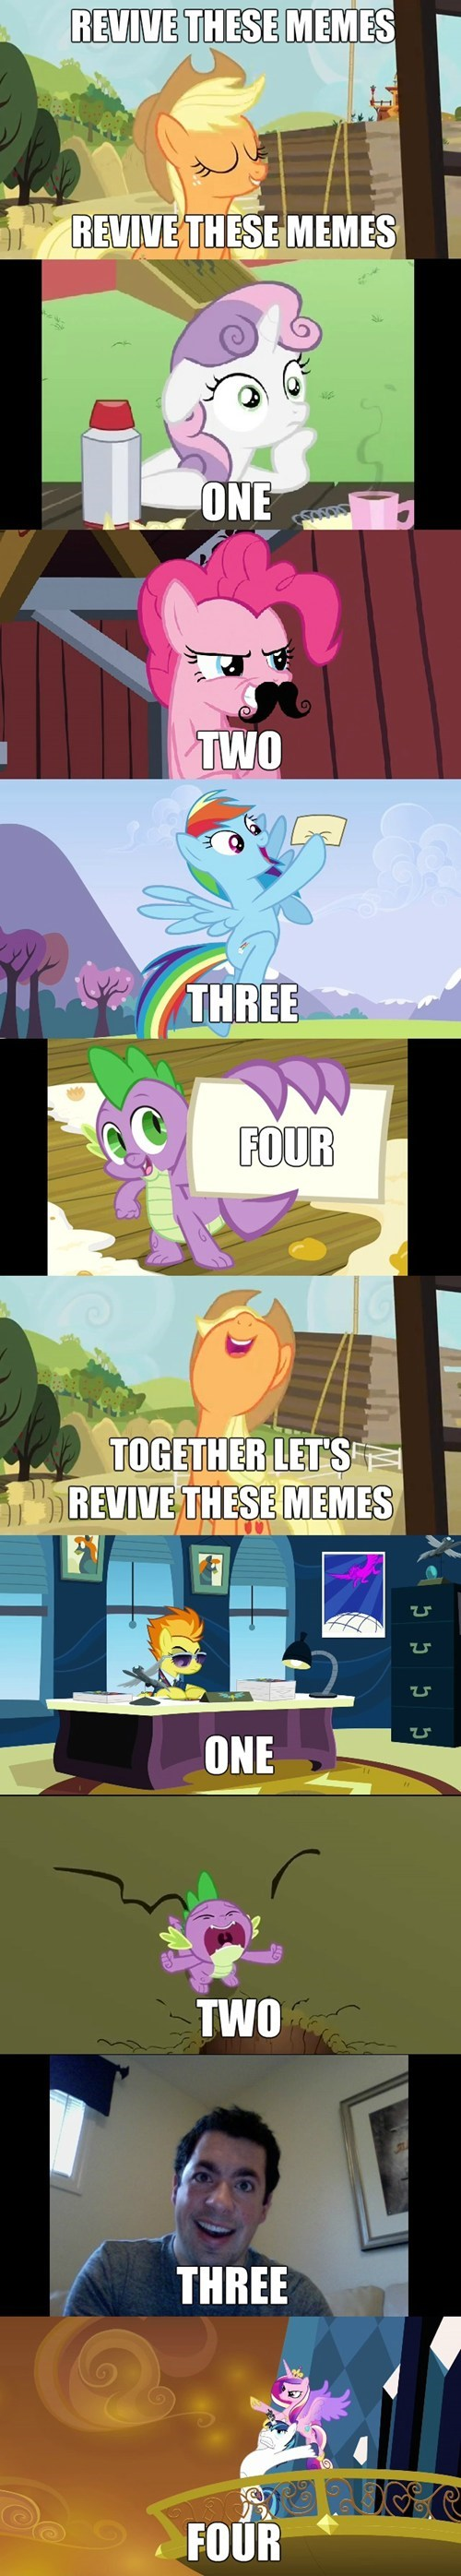 one two three four,Memes,revive all the memes